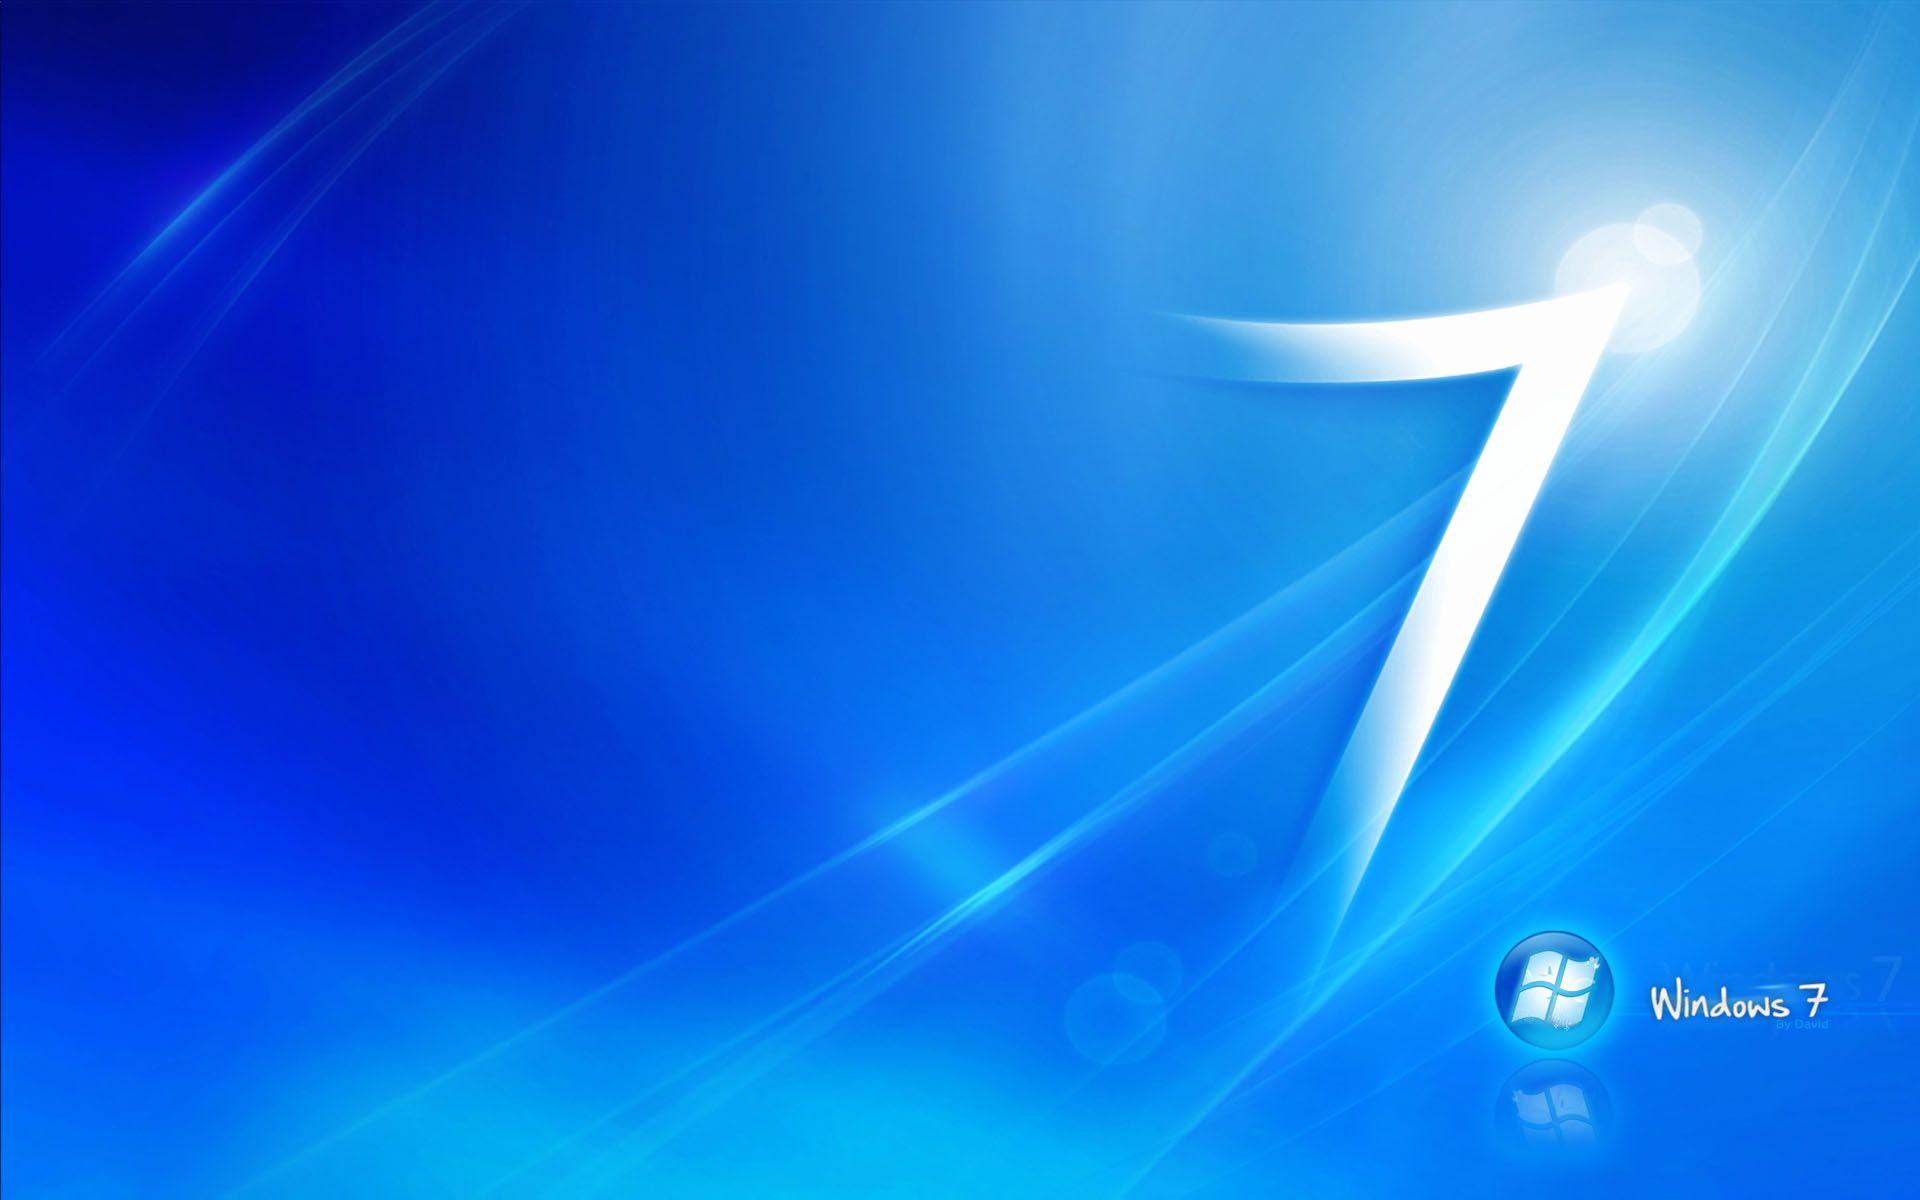 Windows 7 Wallpapers - Full HD wallpaper search - page 7